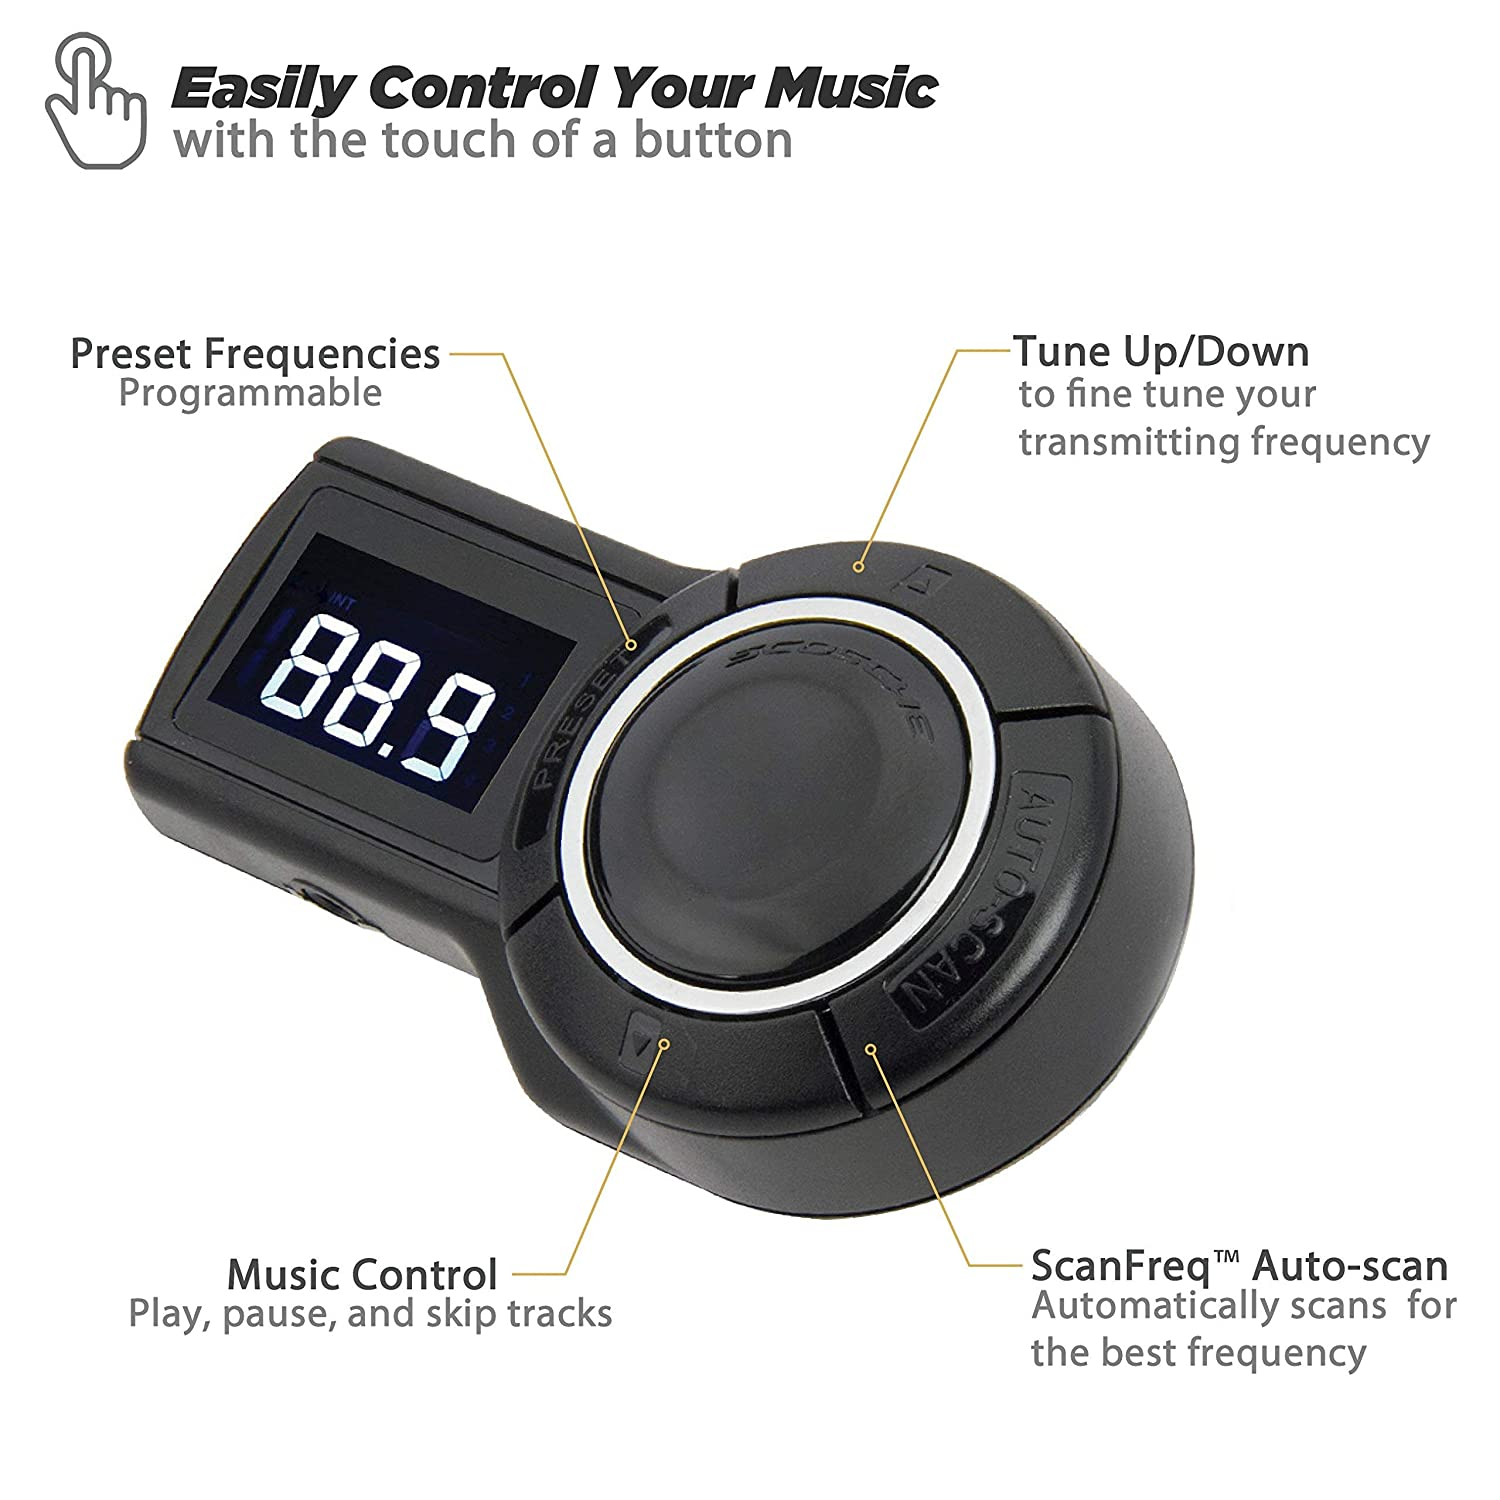 SCOSCHE FMTD9R FreqOut Pro Universal Digital FM Transmitter with Built-In USB Charge Port and Integrated Music Controls for Phones Renewed iPods and More MP3 Players Black